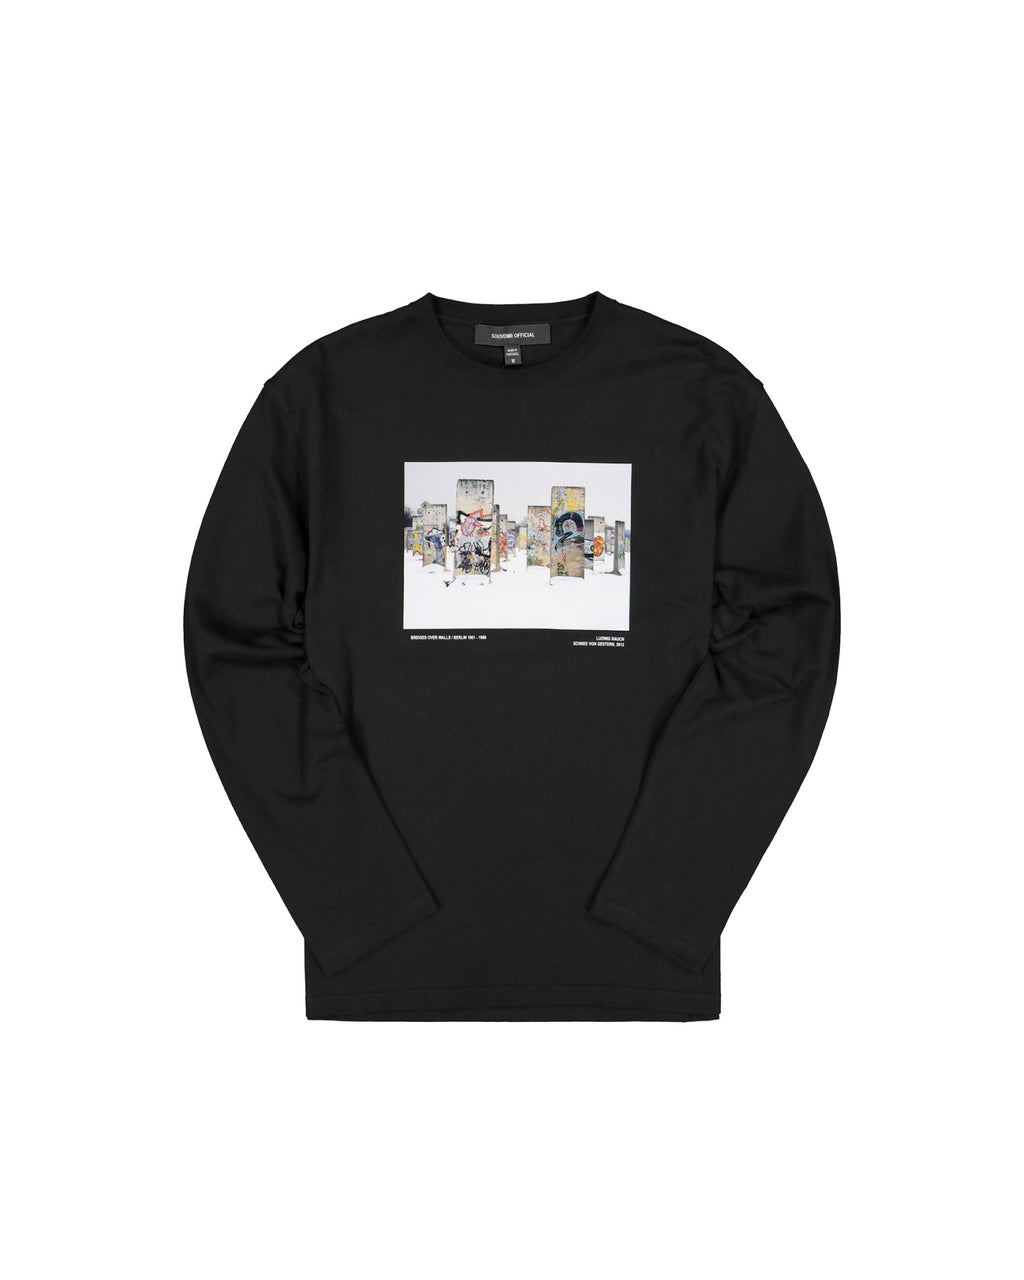 BRIDGES OVER WALLS LONGSLEEVE